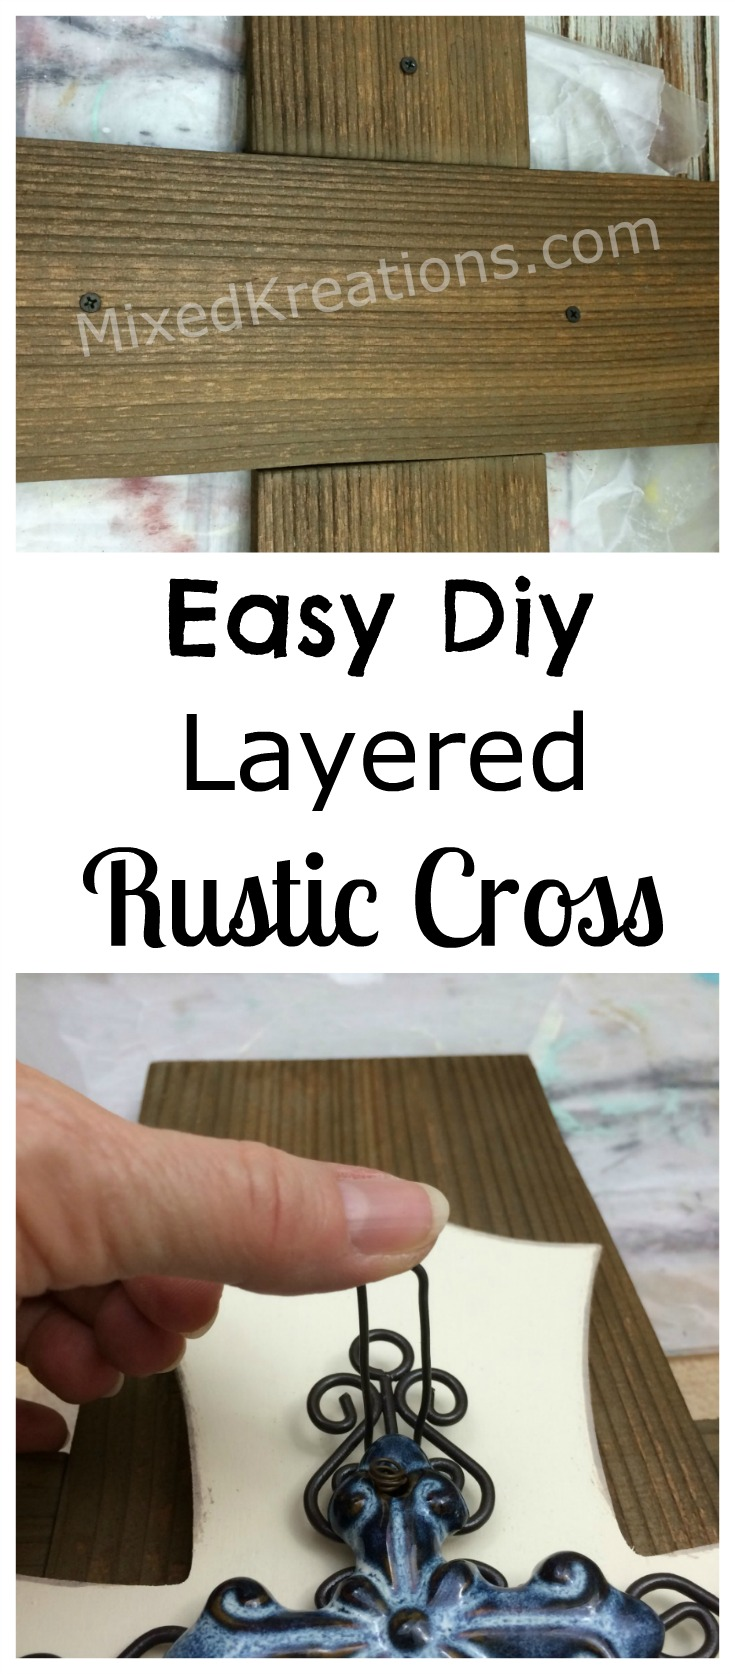 easy diy layered rustic cross